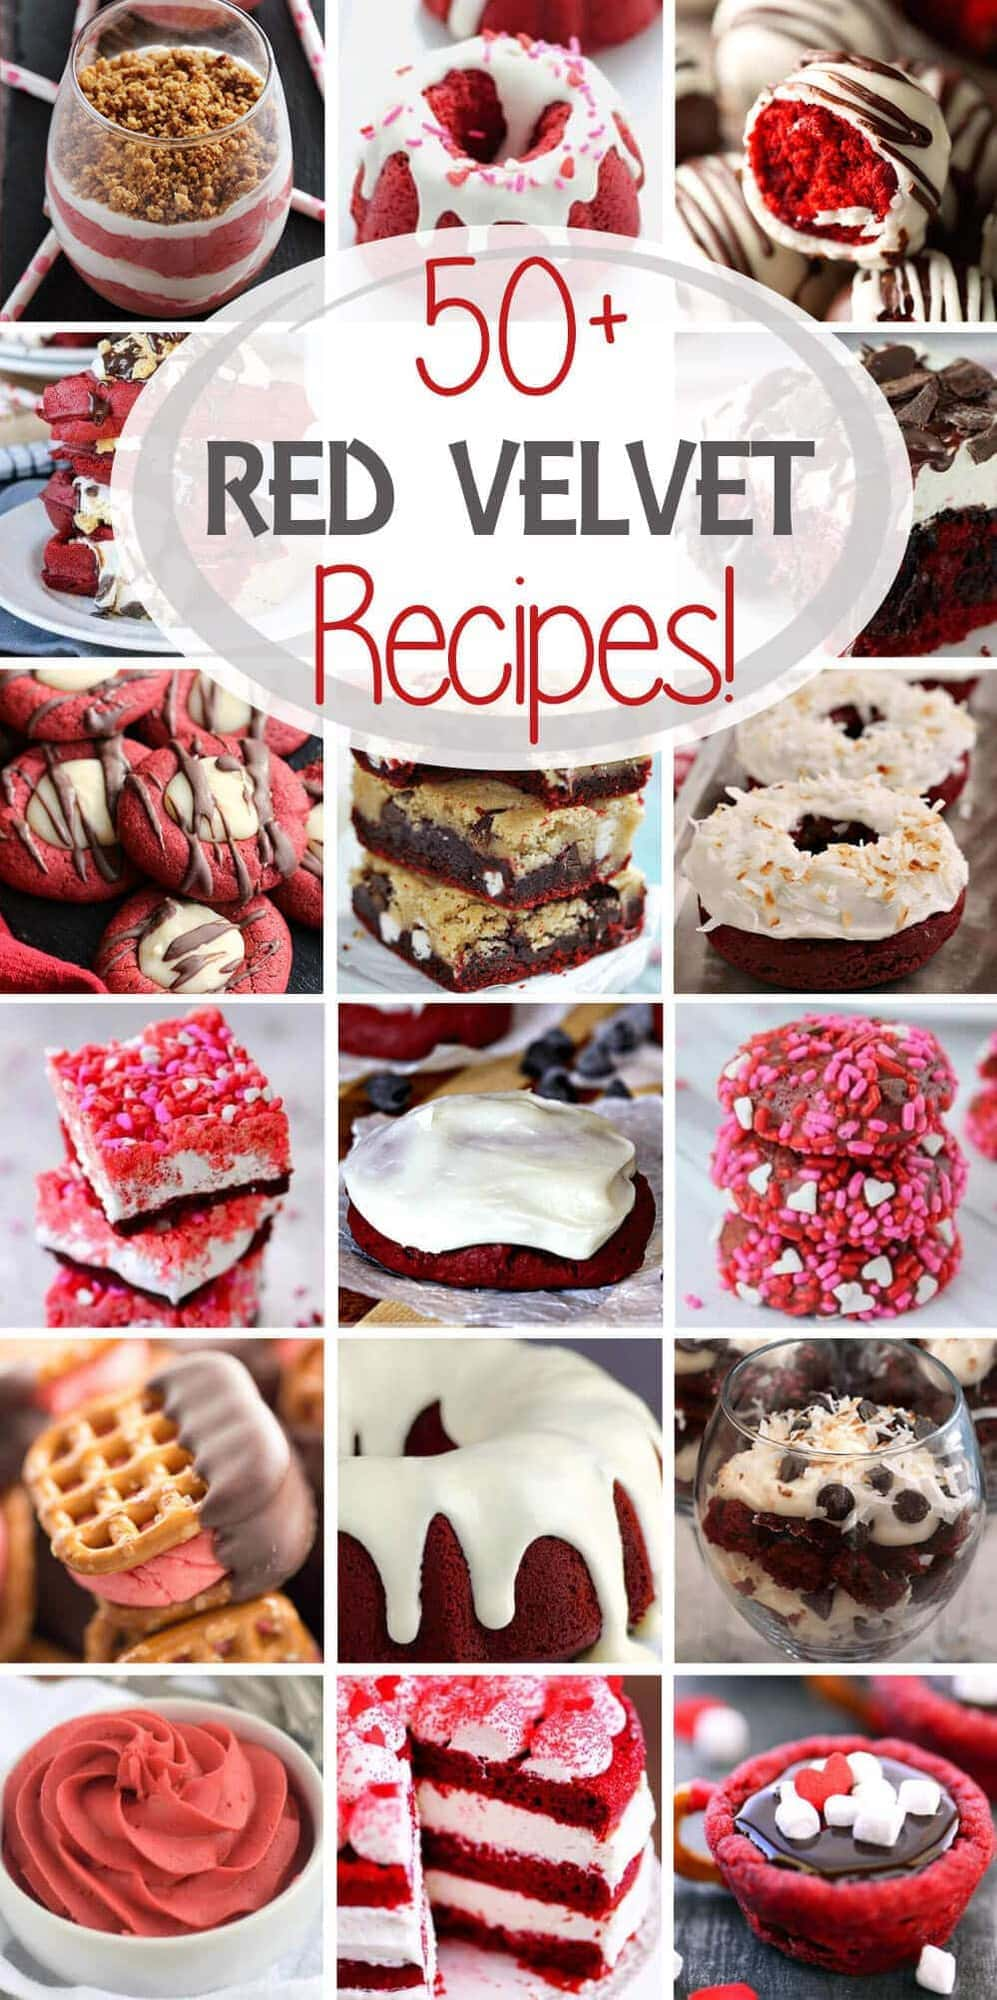 50 of the Best Red Velvet Recipes in one place from all of your Favorite Bloggers! Everything from cupcakes and donuts to milkshakes and pretzels!